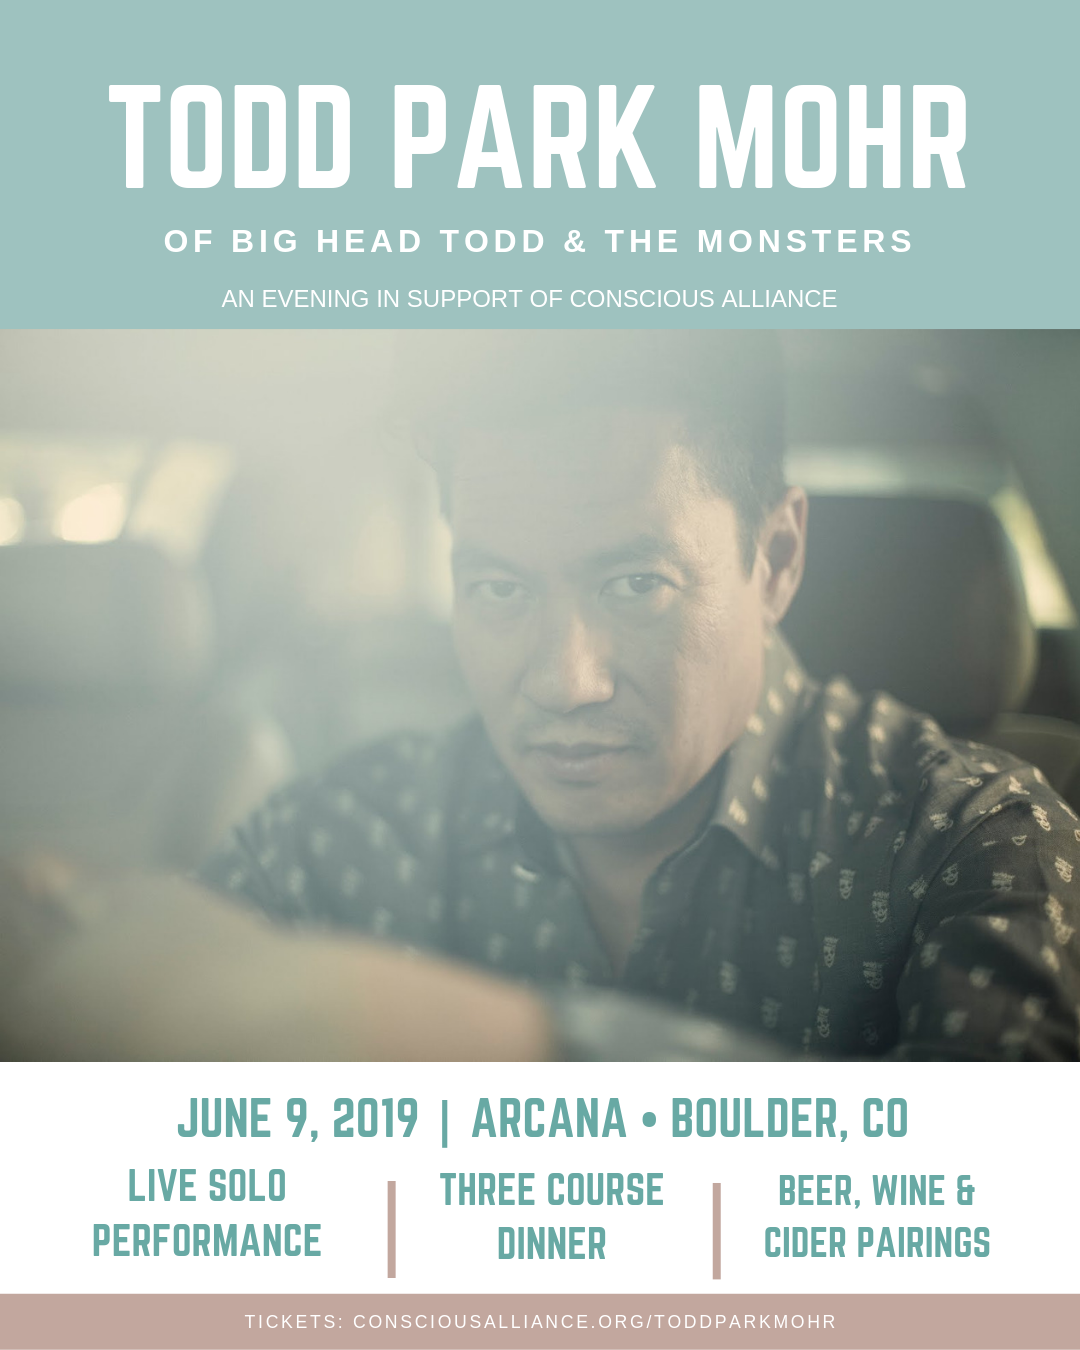 Todd Park Mohr Solo Performance in Boulder: June 9!